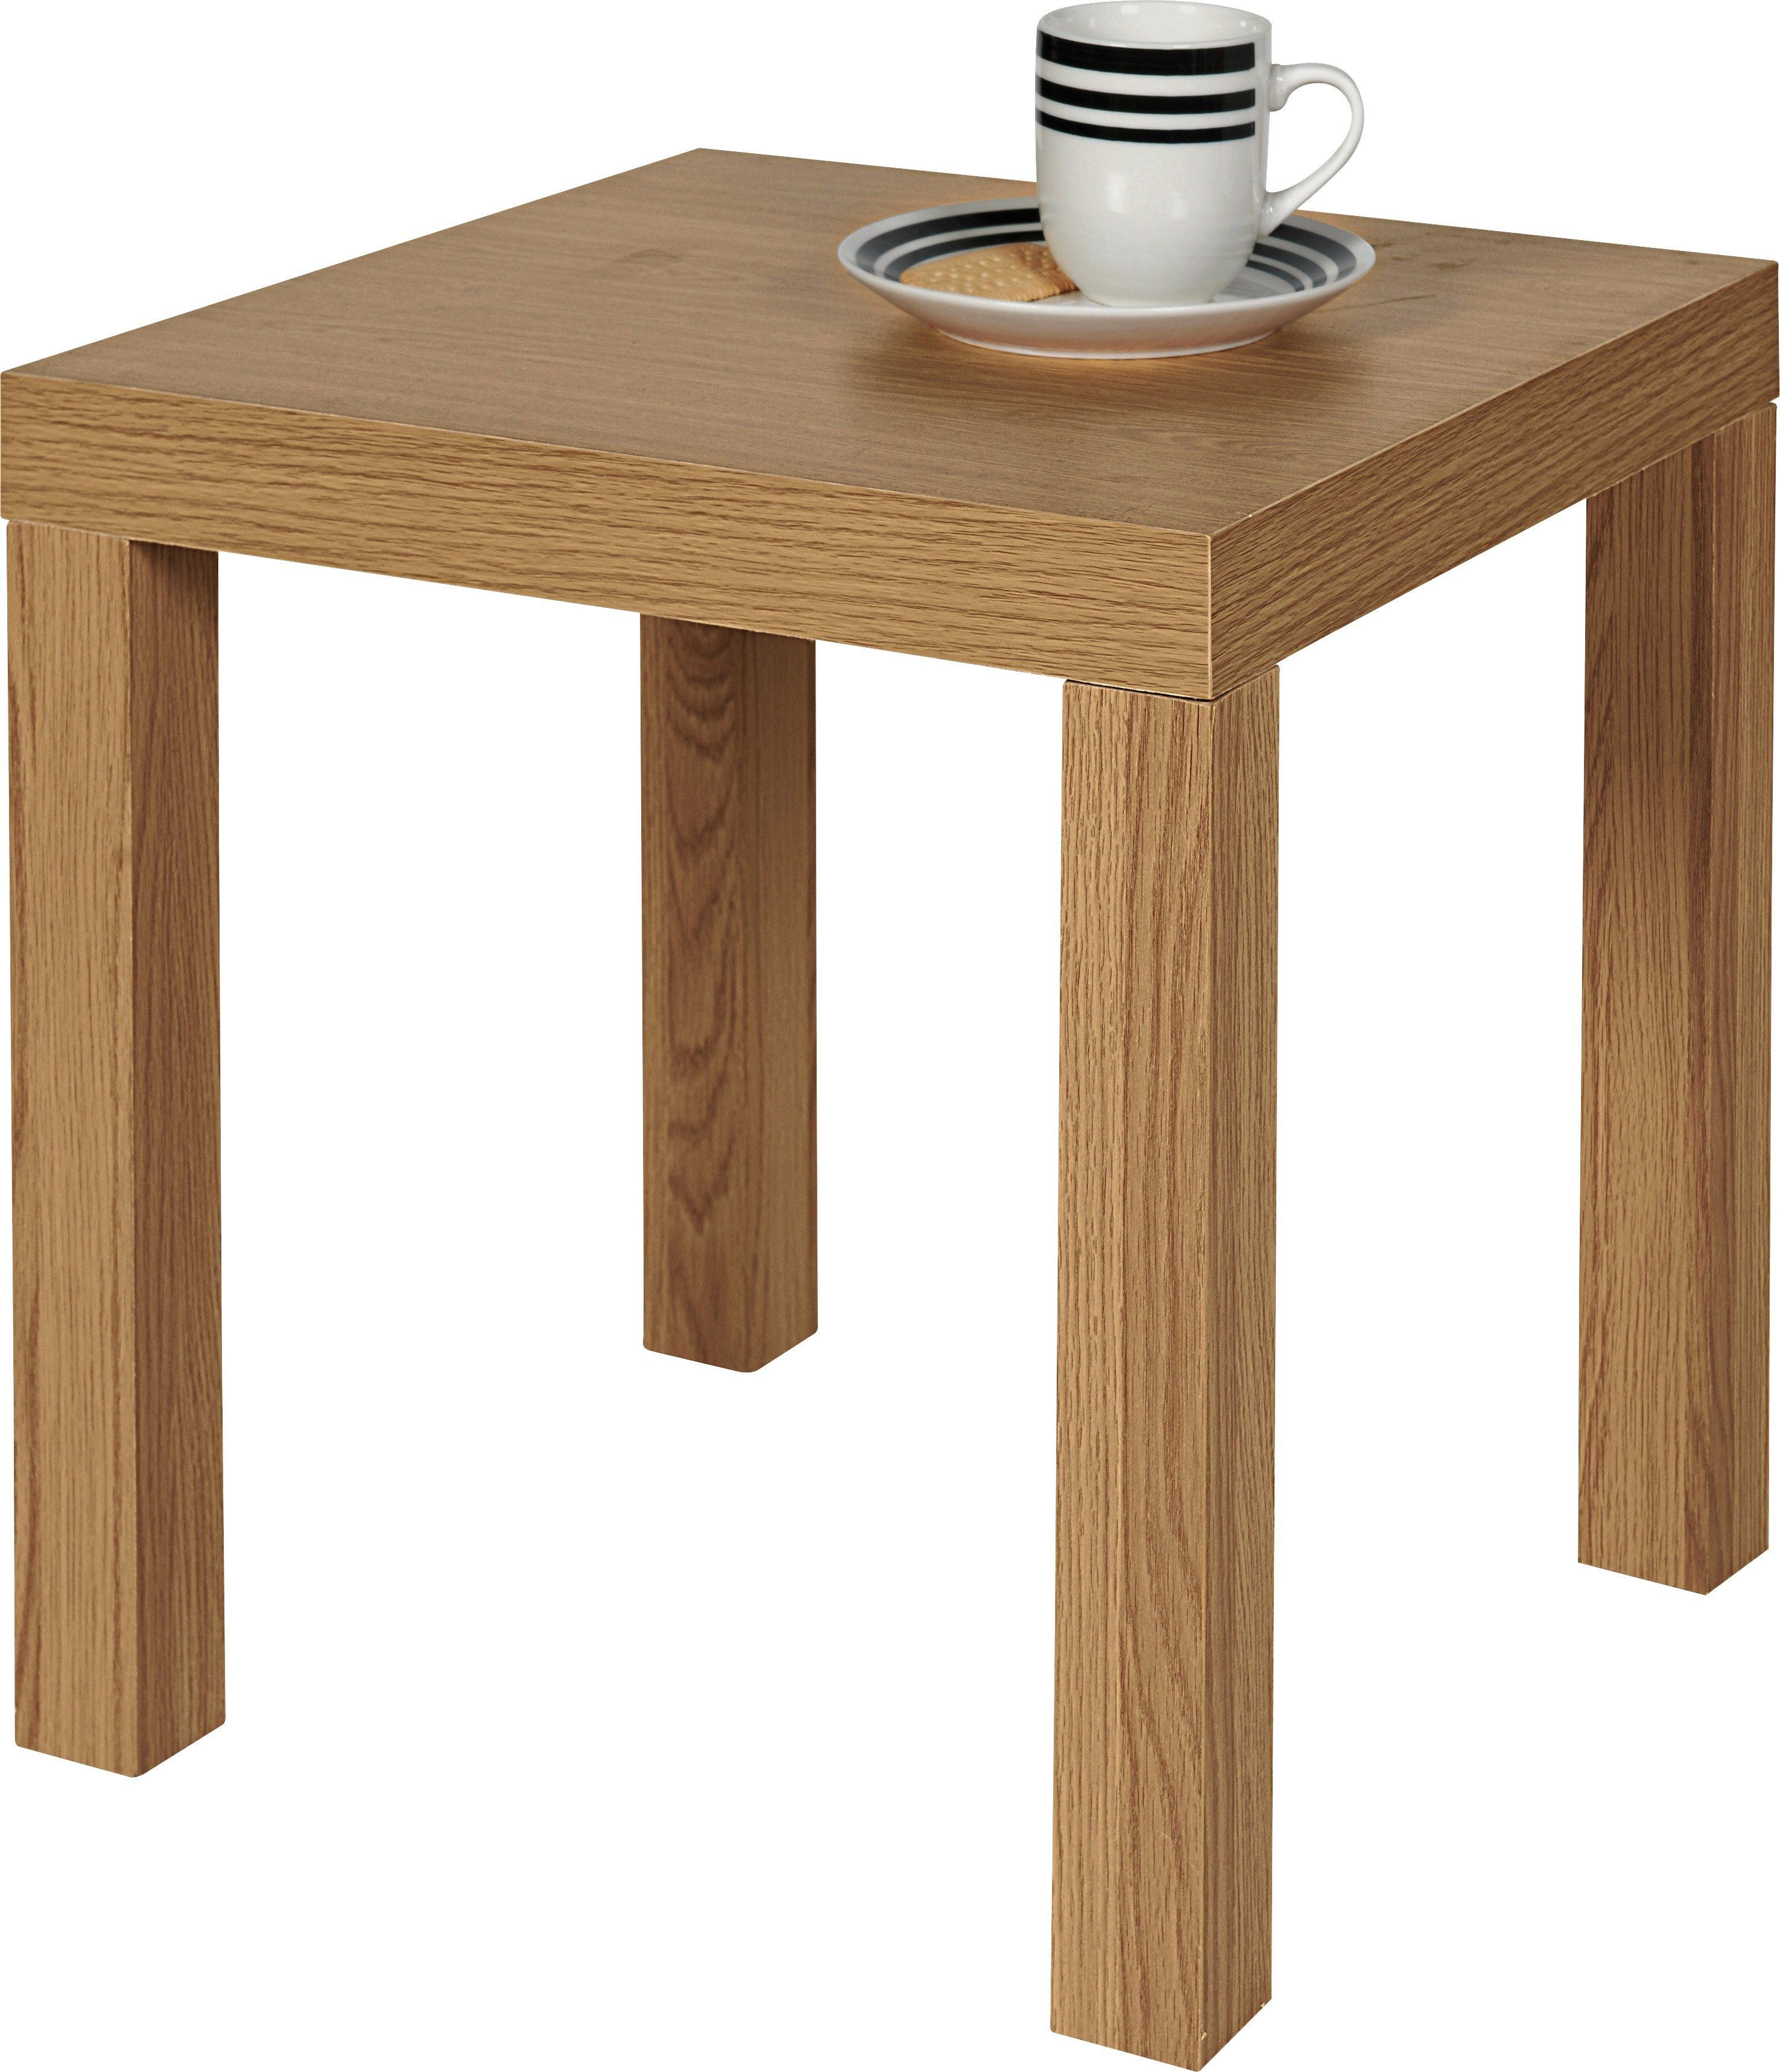 Buy HOME End Table Oak Effect Coffee tables side tables and